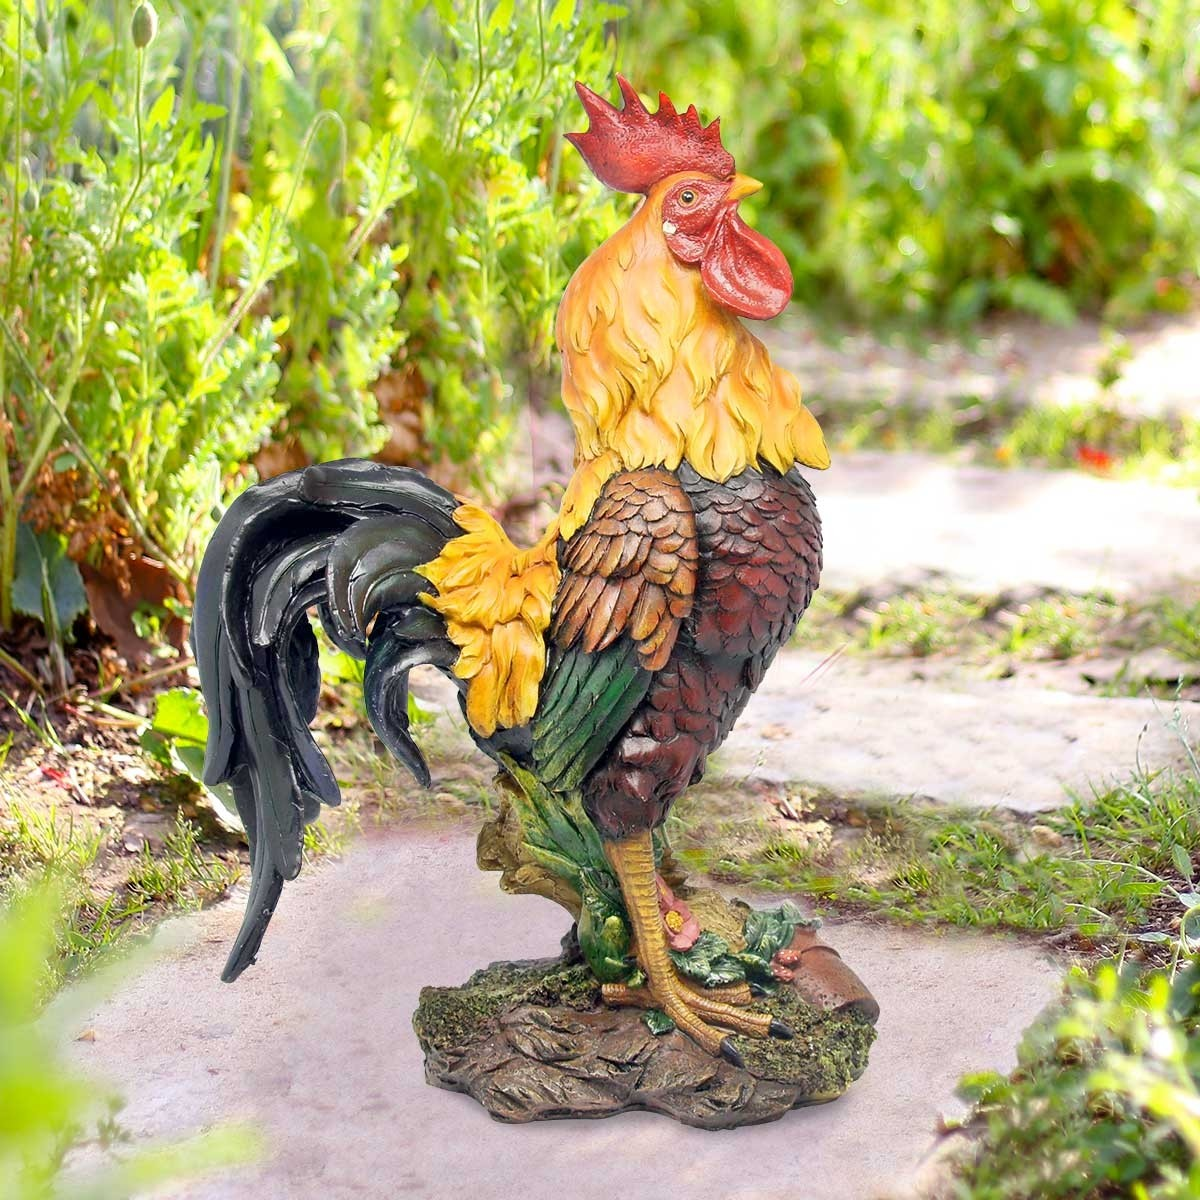 Stsatuette For Outdoor Ponds: Polyresin Rooster Statue